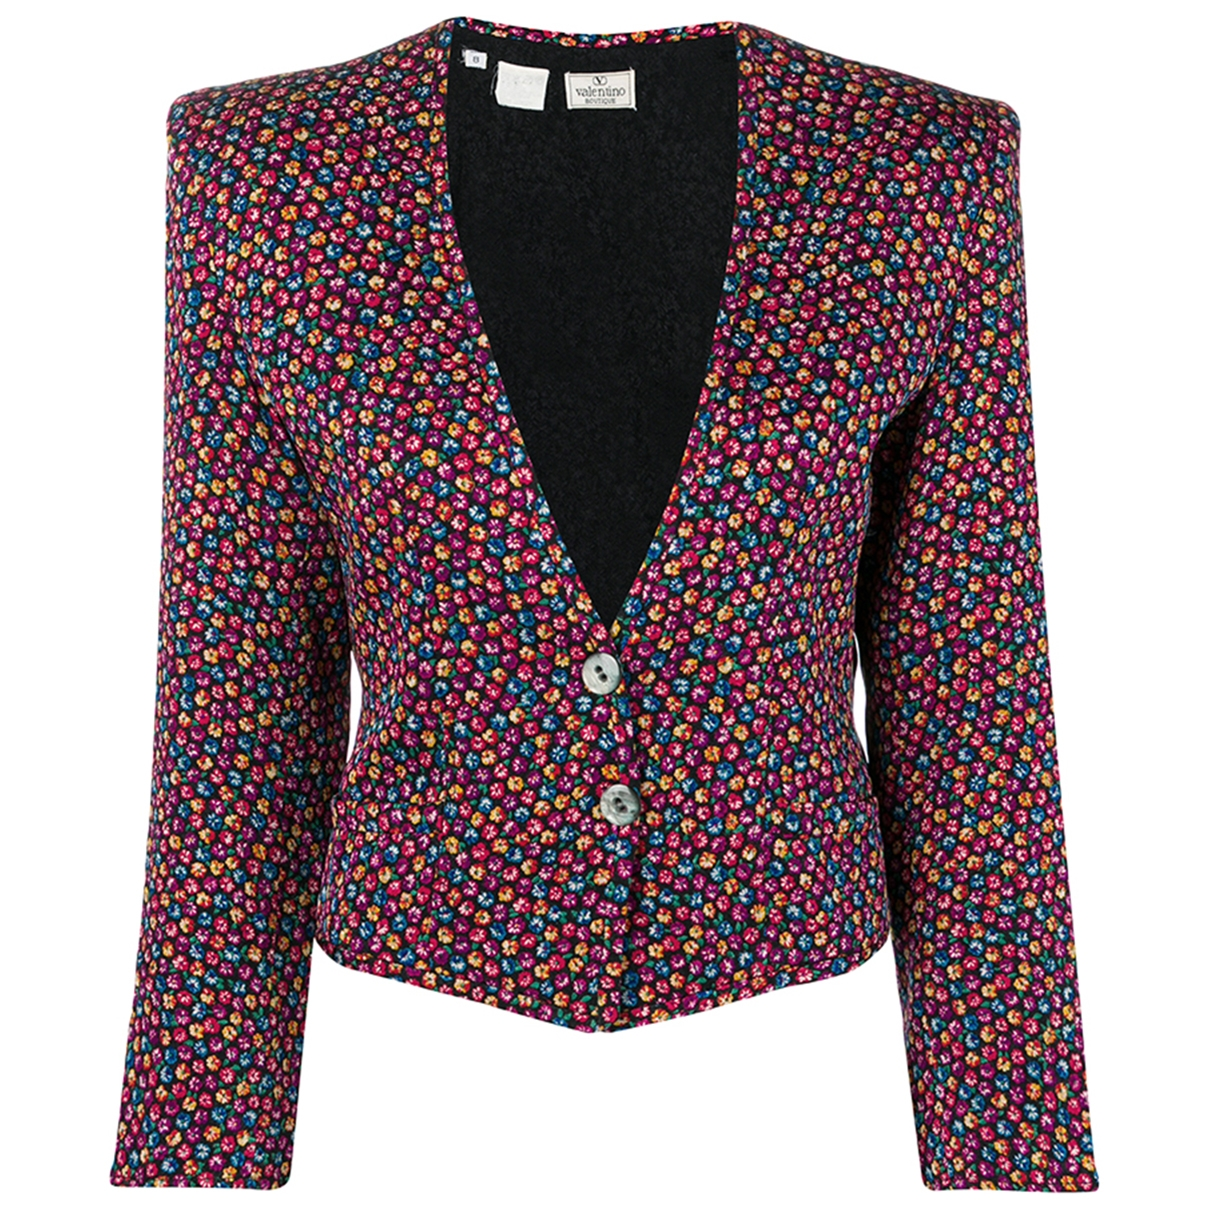 Valentino Garavani \N Multicolour Cotton jacket for Women 8 US